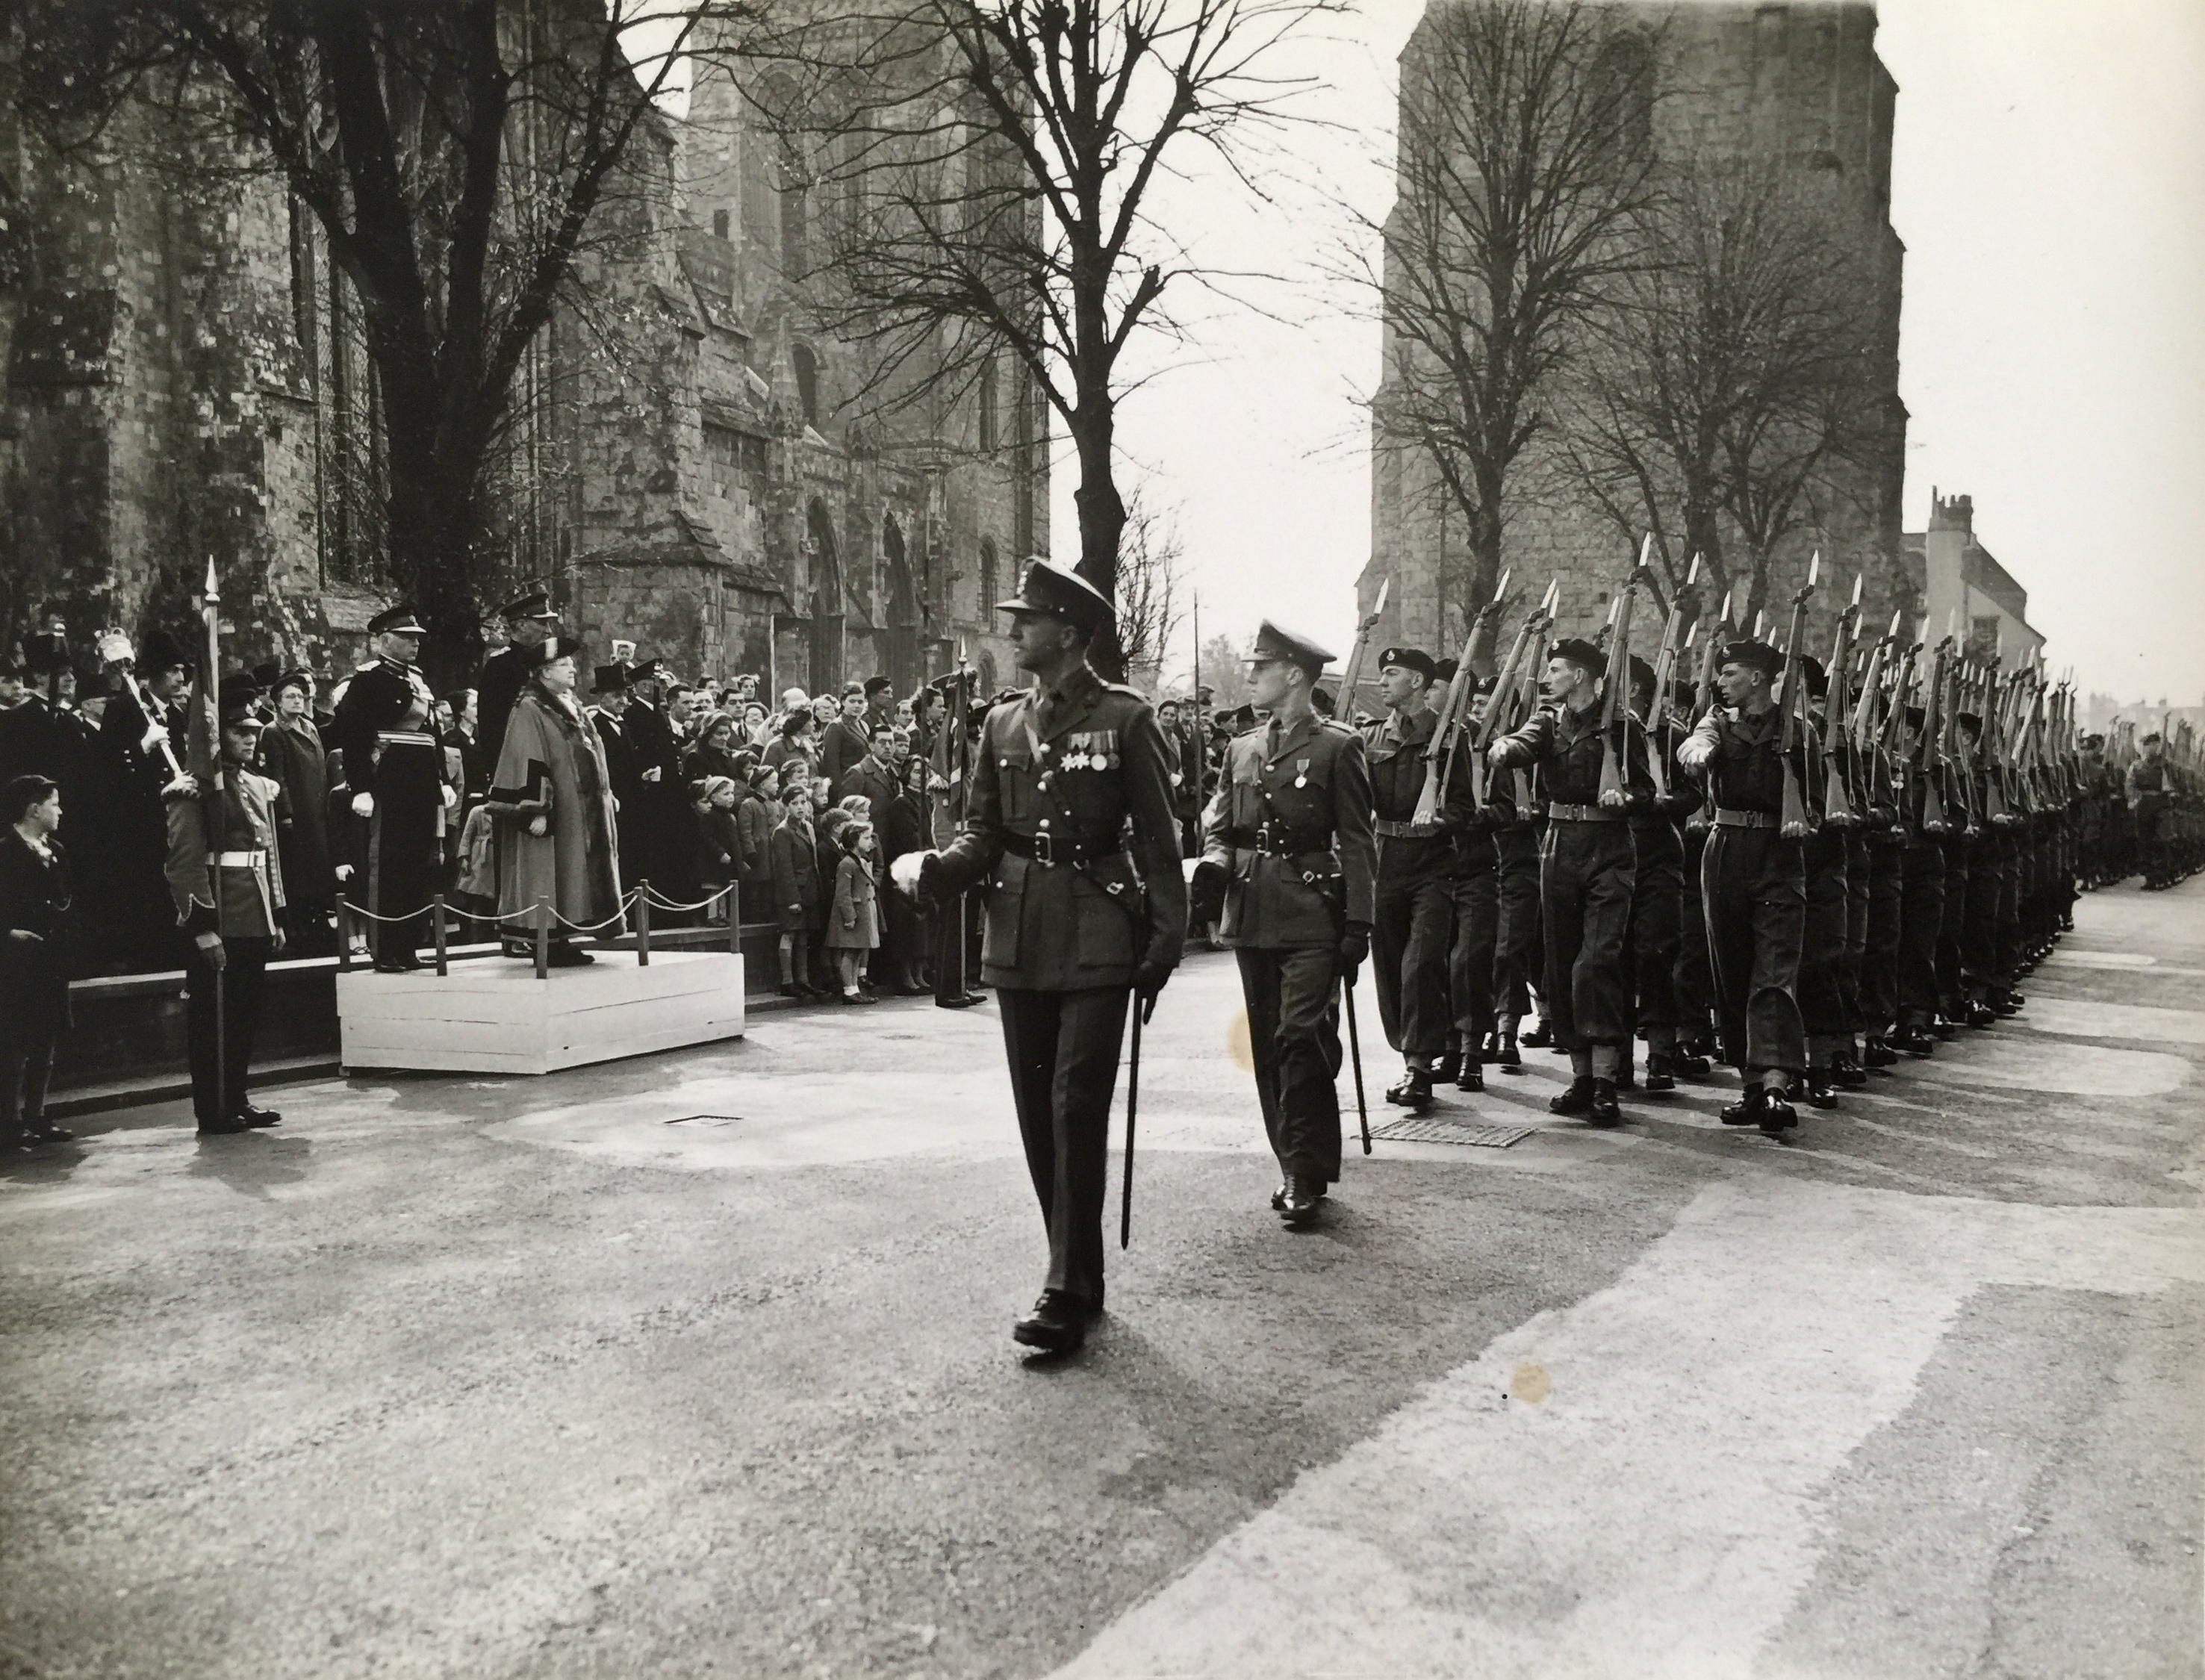 St George's Day Parade, early 50s - Collection Ken Green